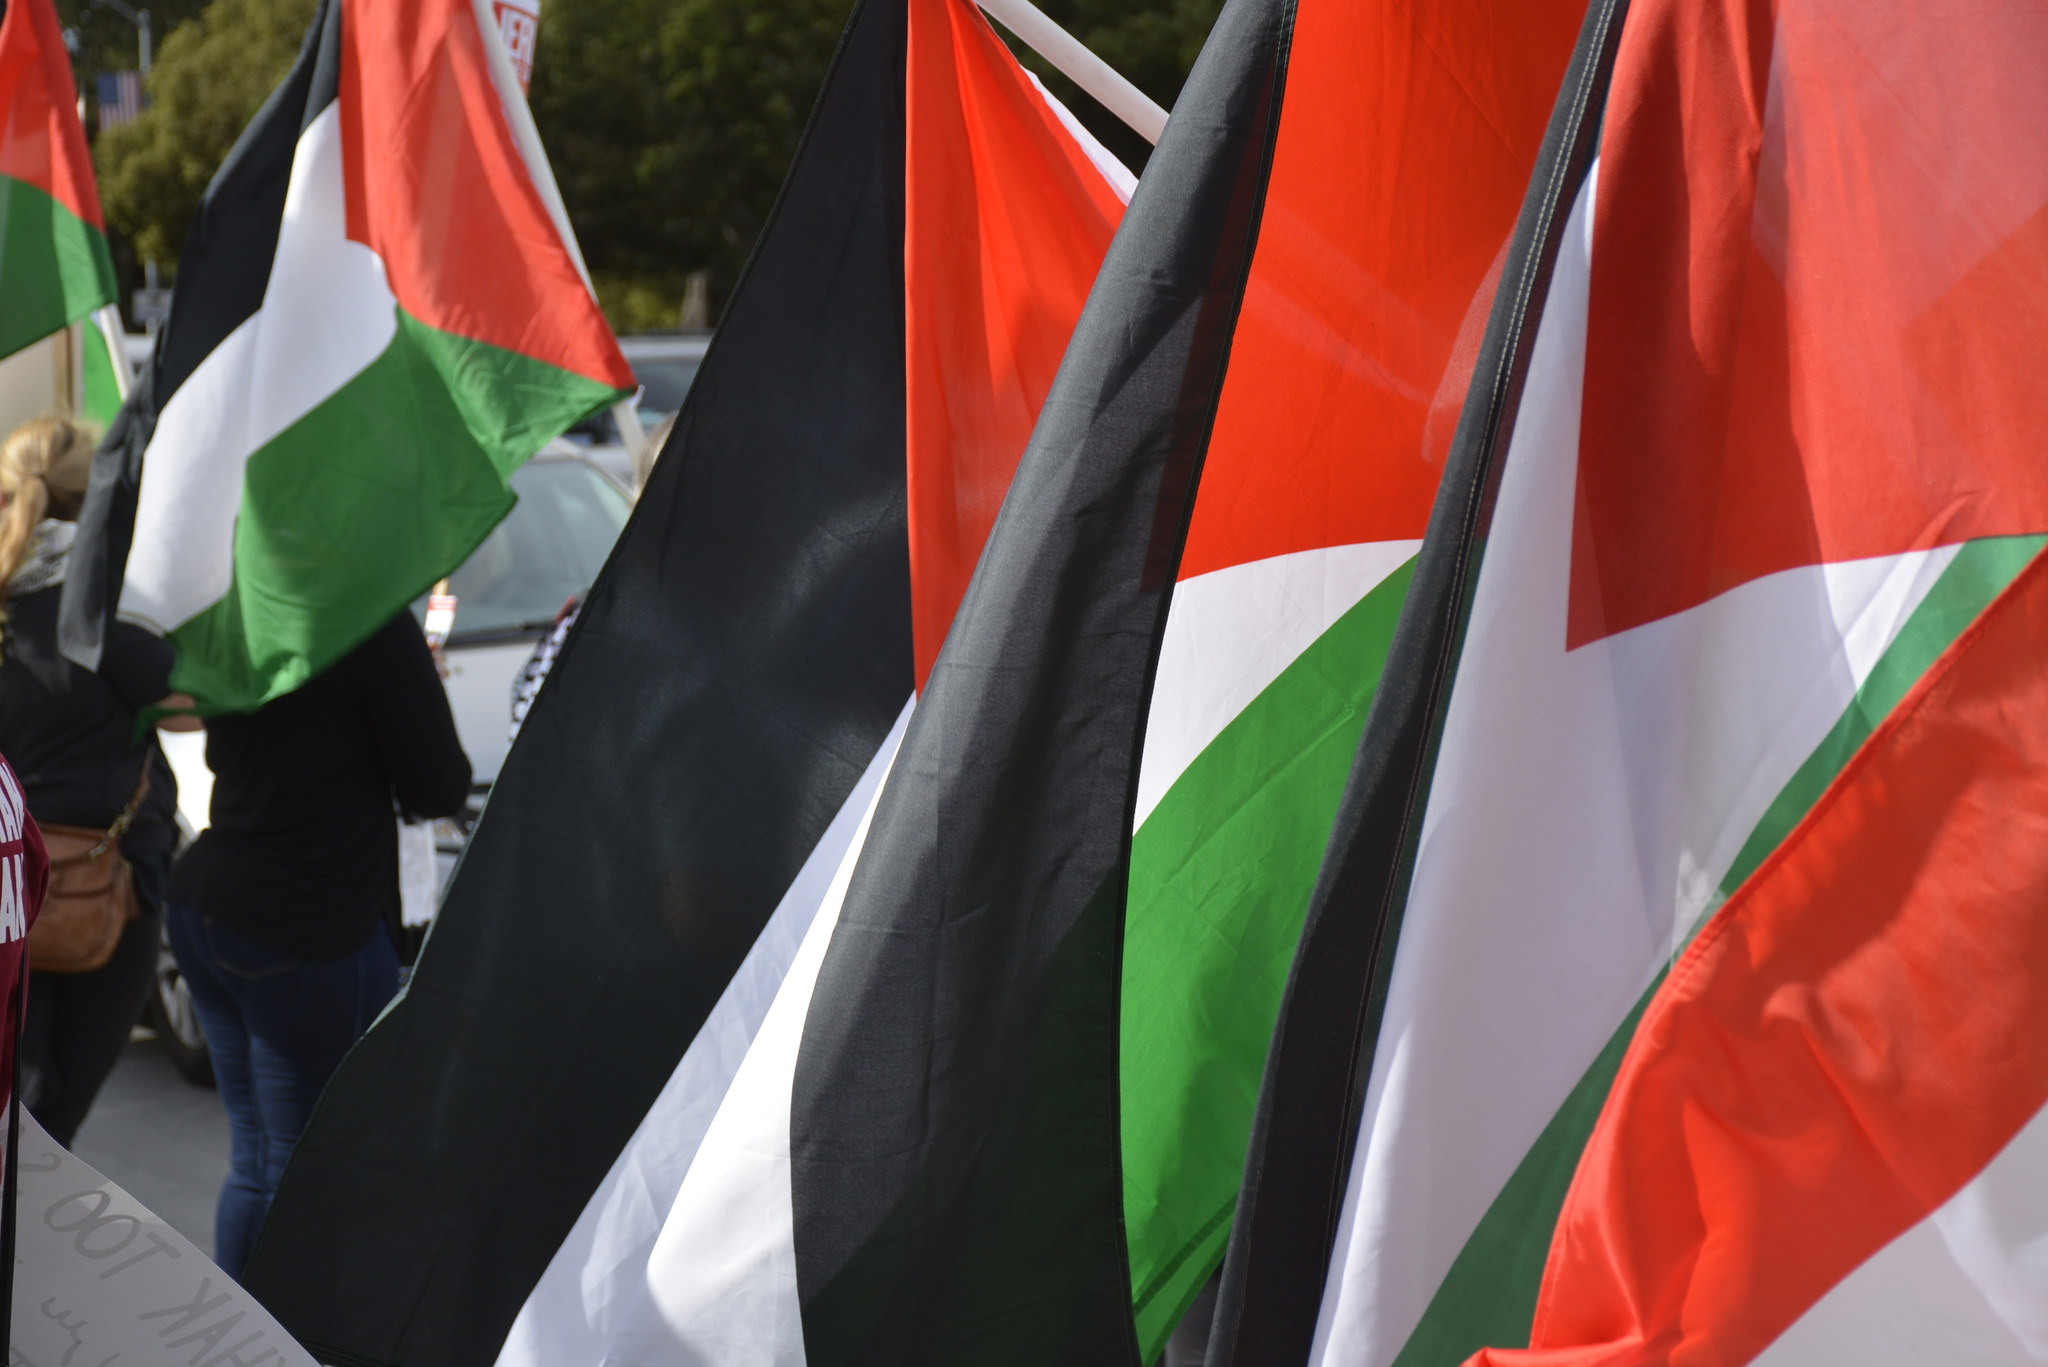 PSL statement: Solidarity with the Palestinian people